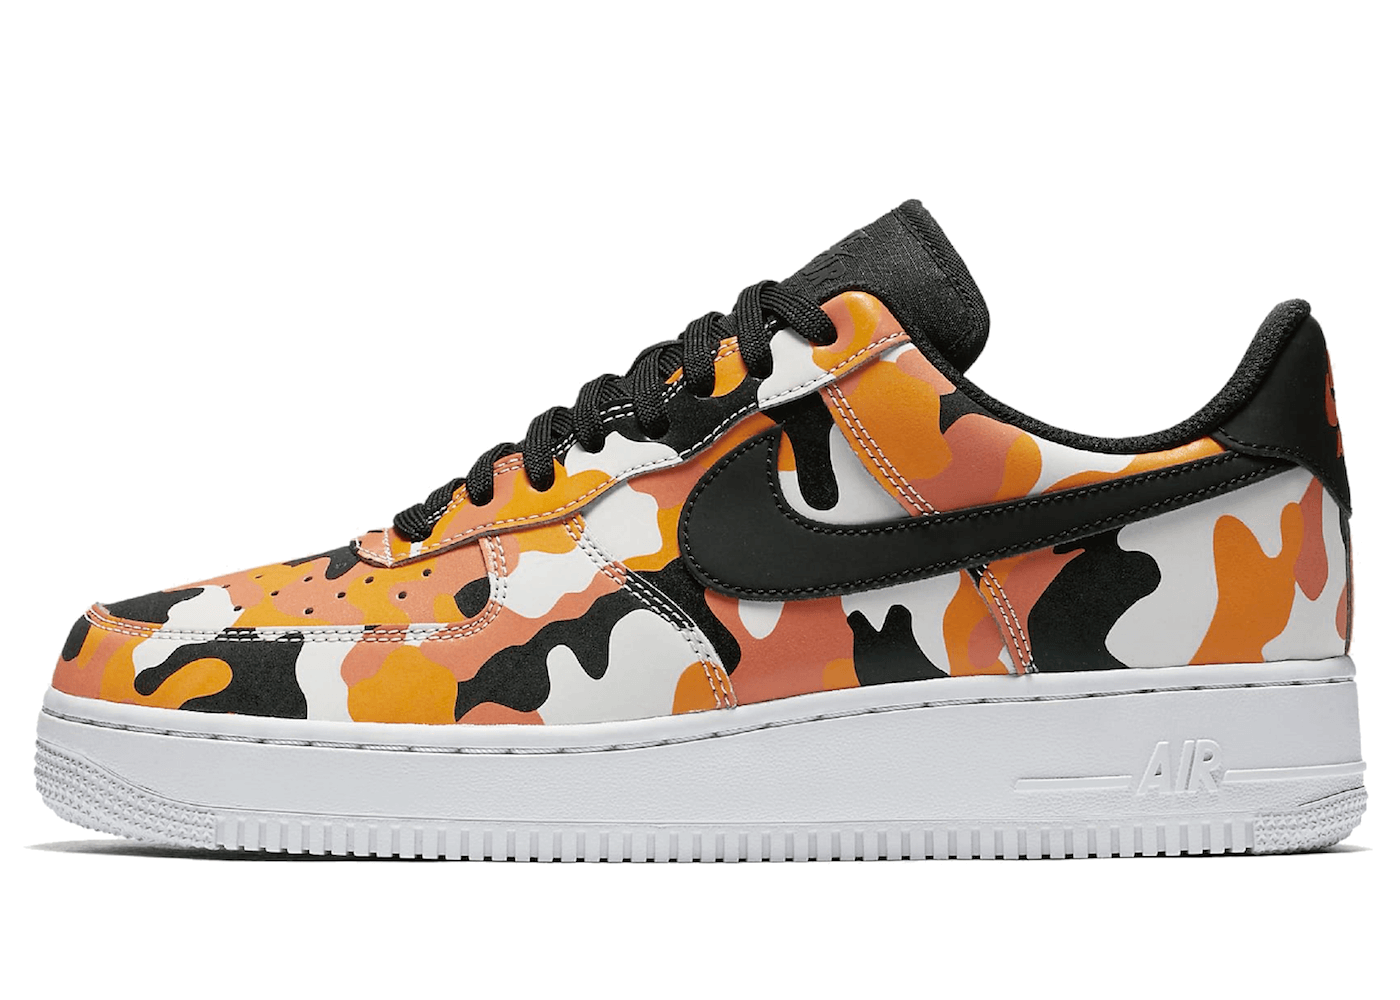 Air Force 1 Low Camo Orangeの写真